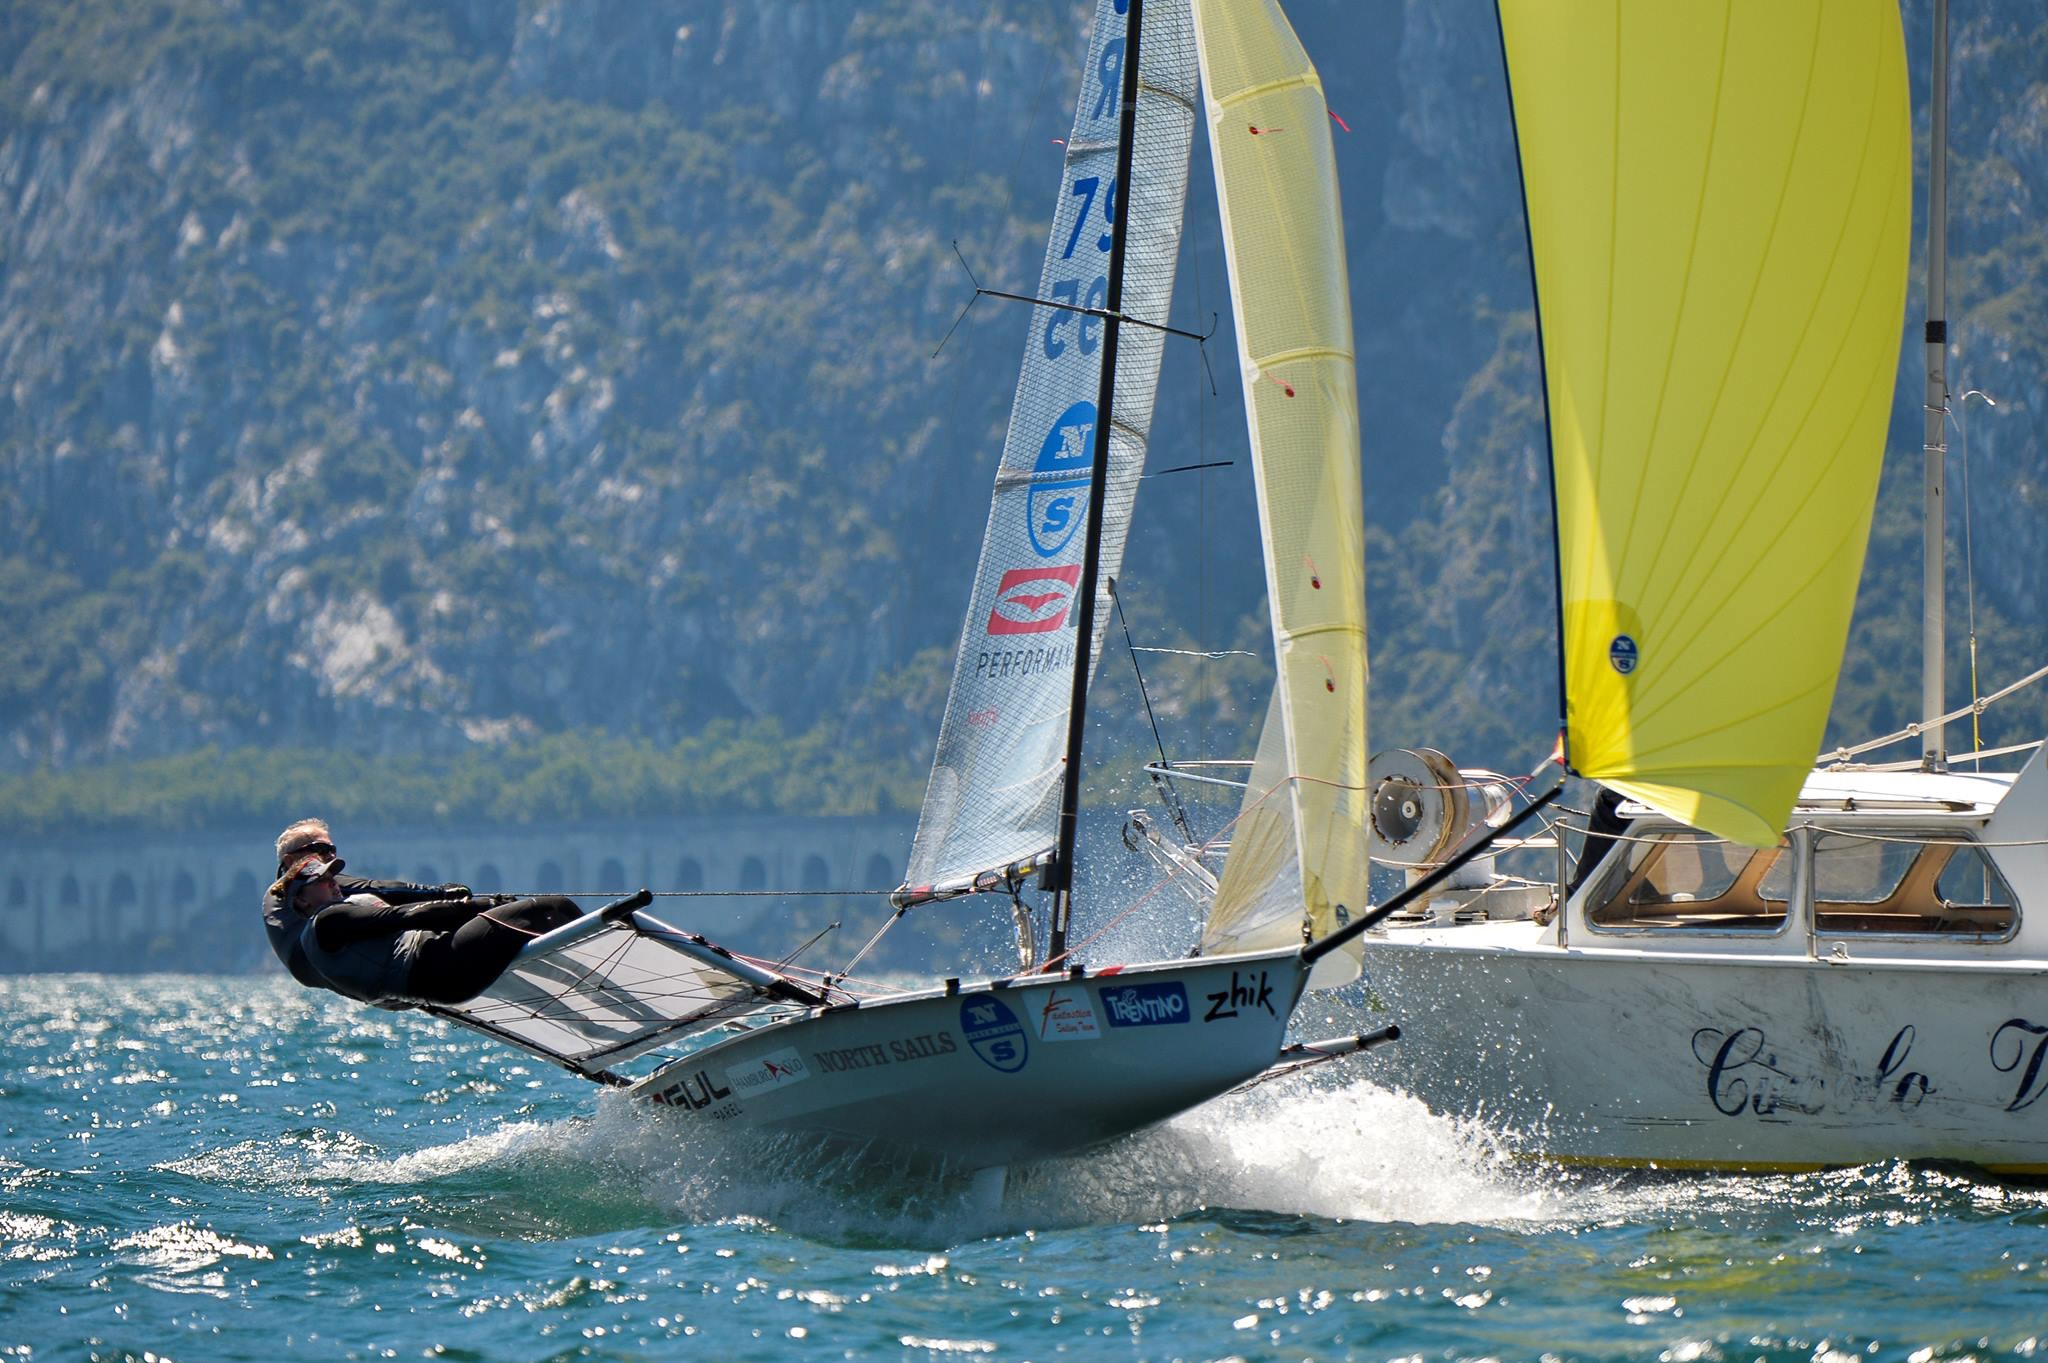 Seavolution B14 795 Blasting downwind at Garda worlds 2016